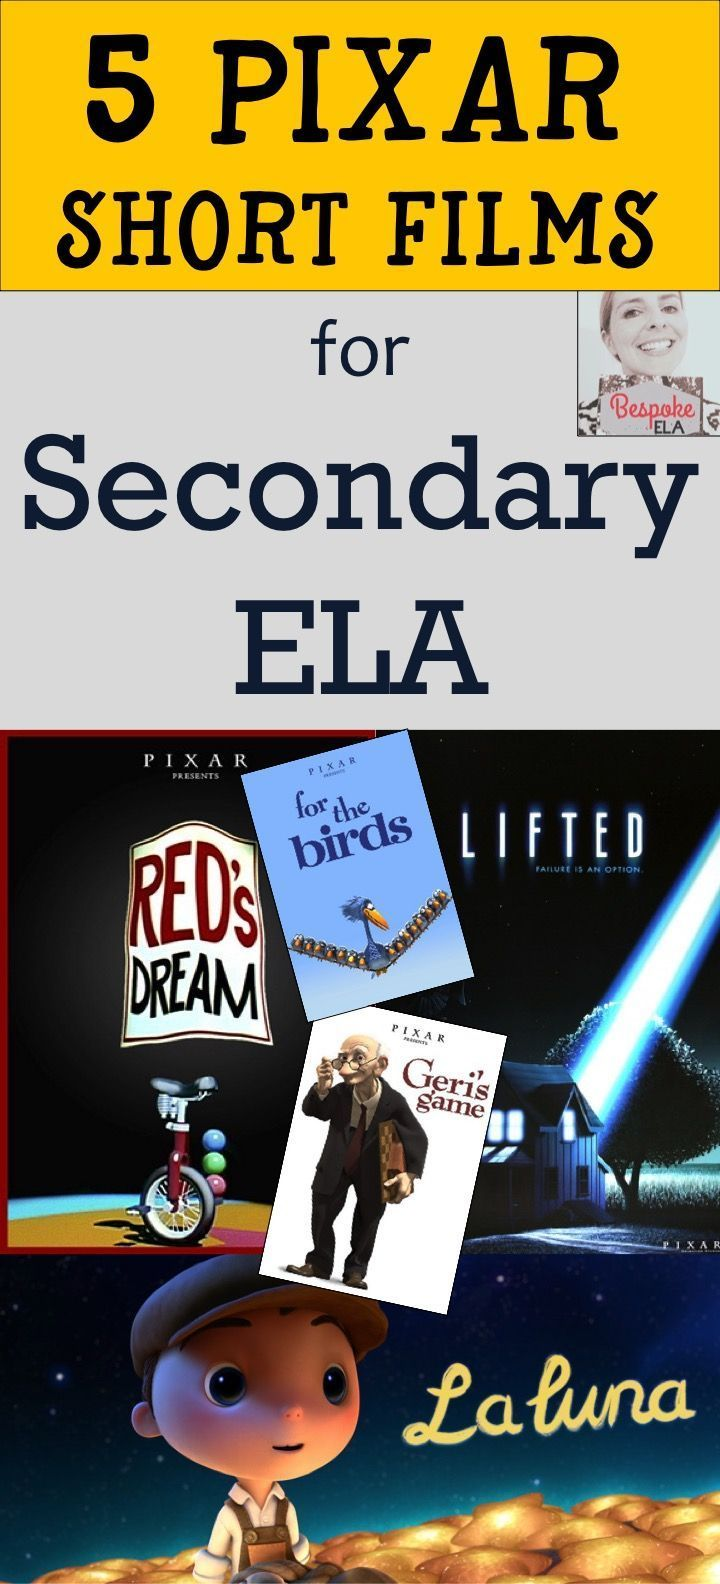 5 pixar short films to use in secondary ela | pinterest | pixar